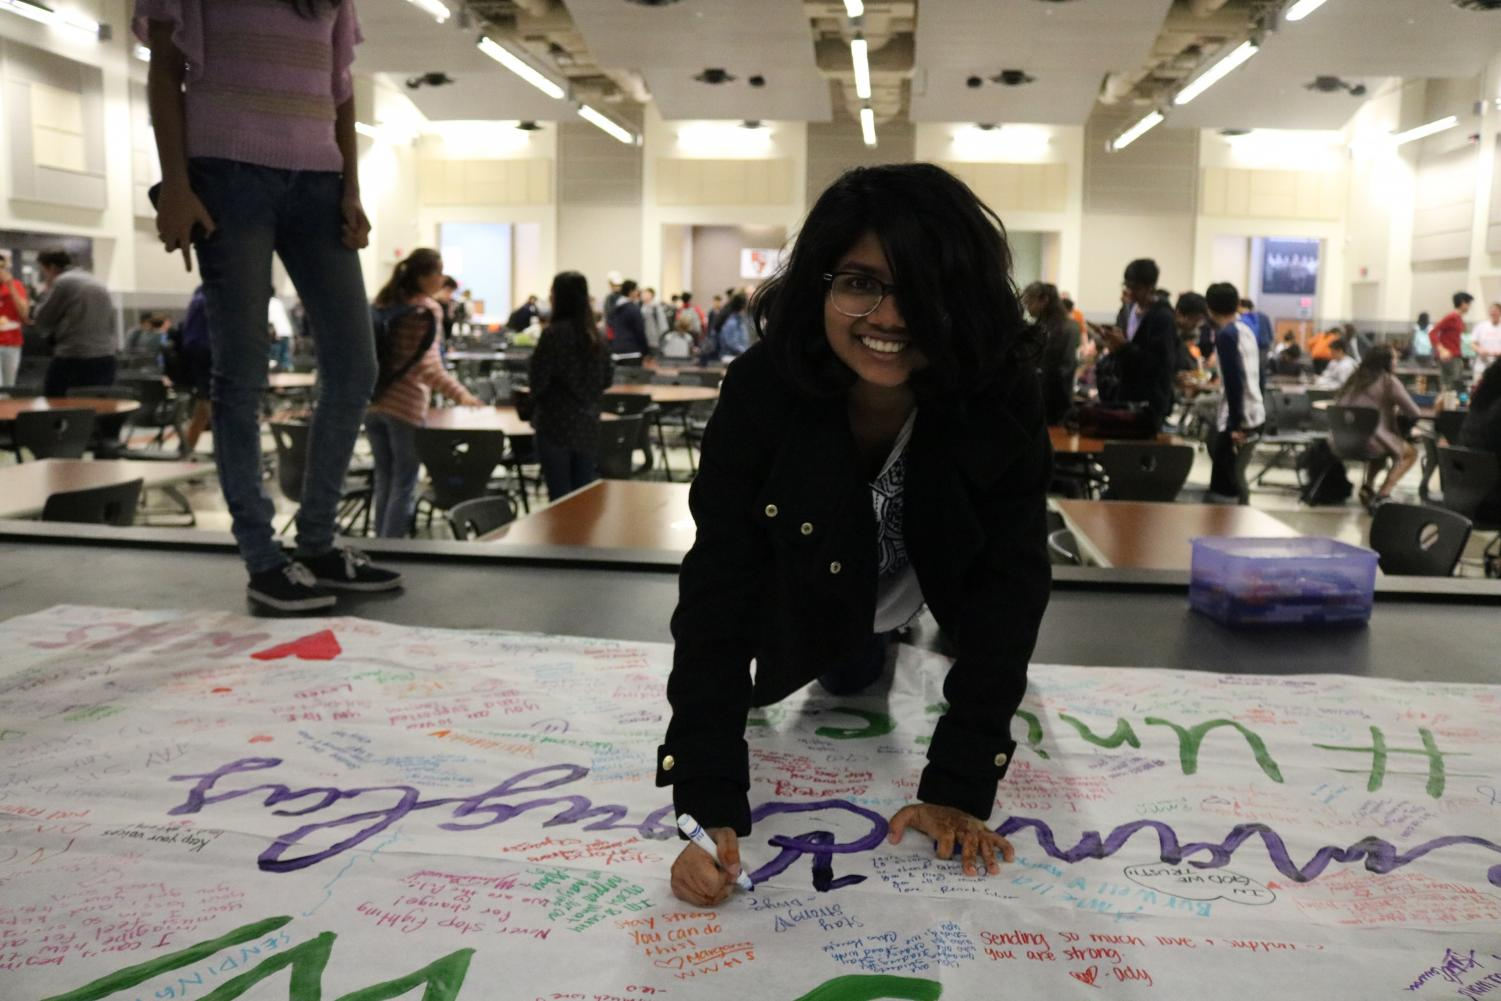 Divya+Chotani+%2720+smiles+while+writing+on+the+banner+in+support+of+the+victims+of+the+Parkland+shooting.